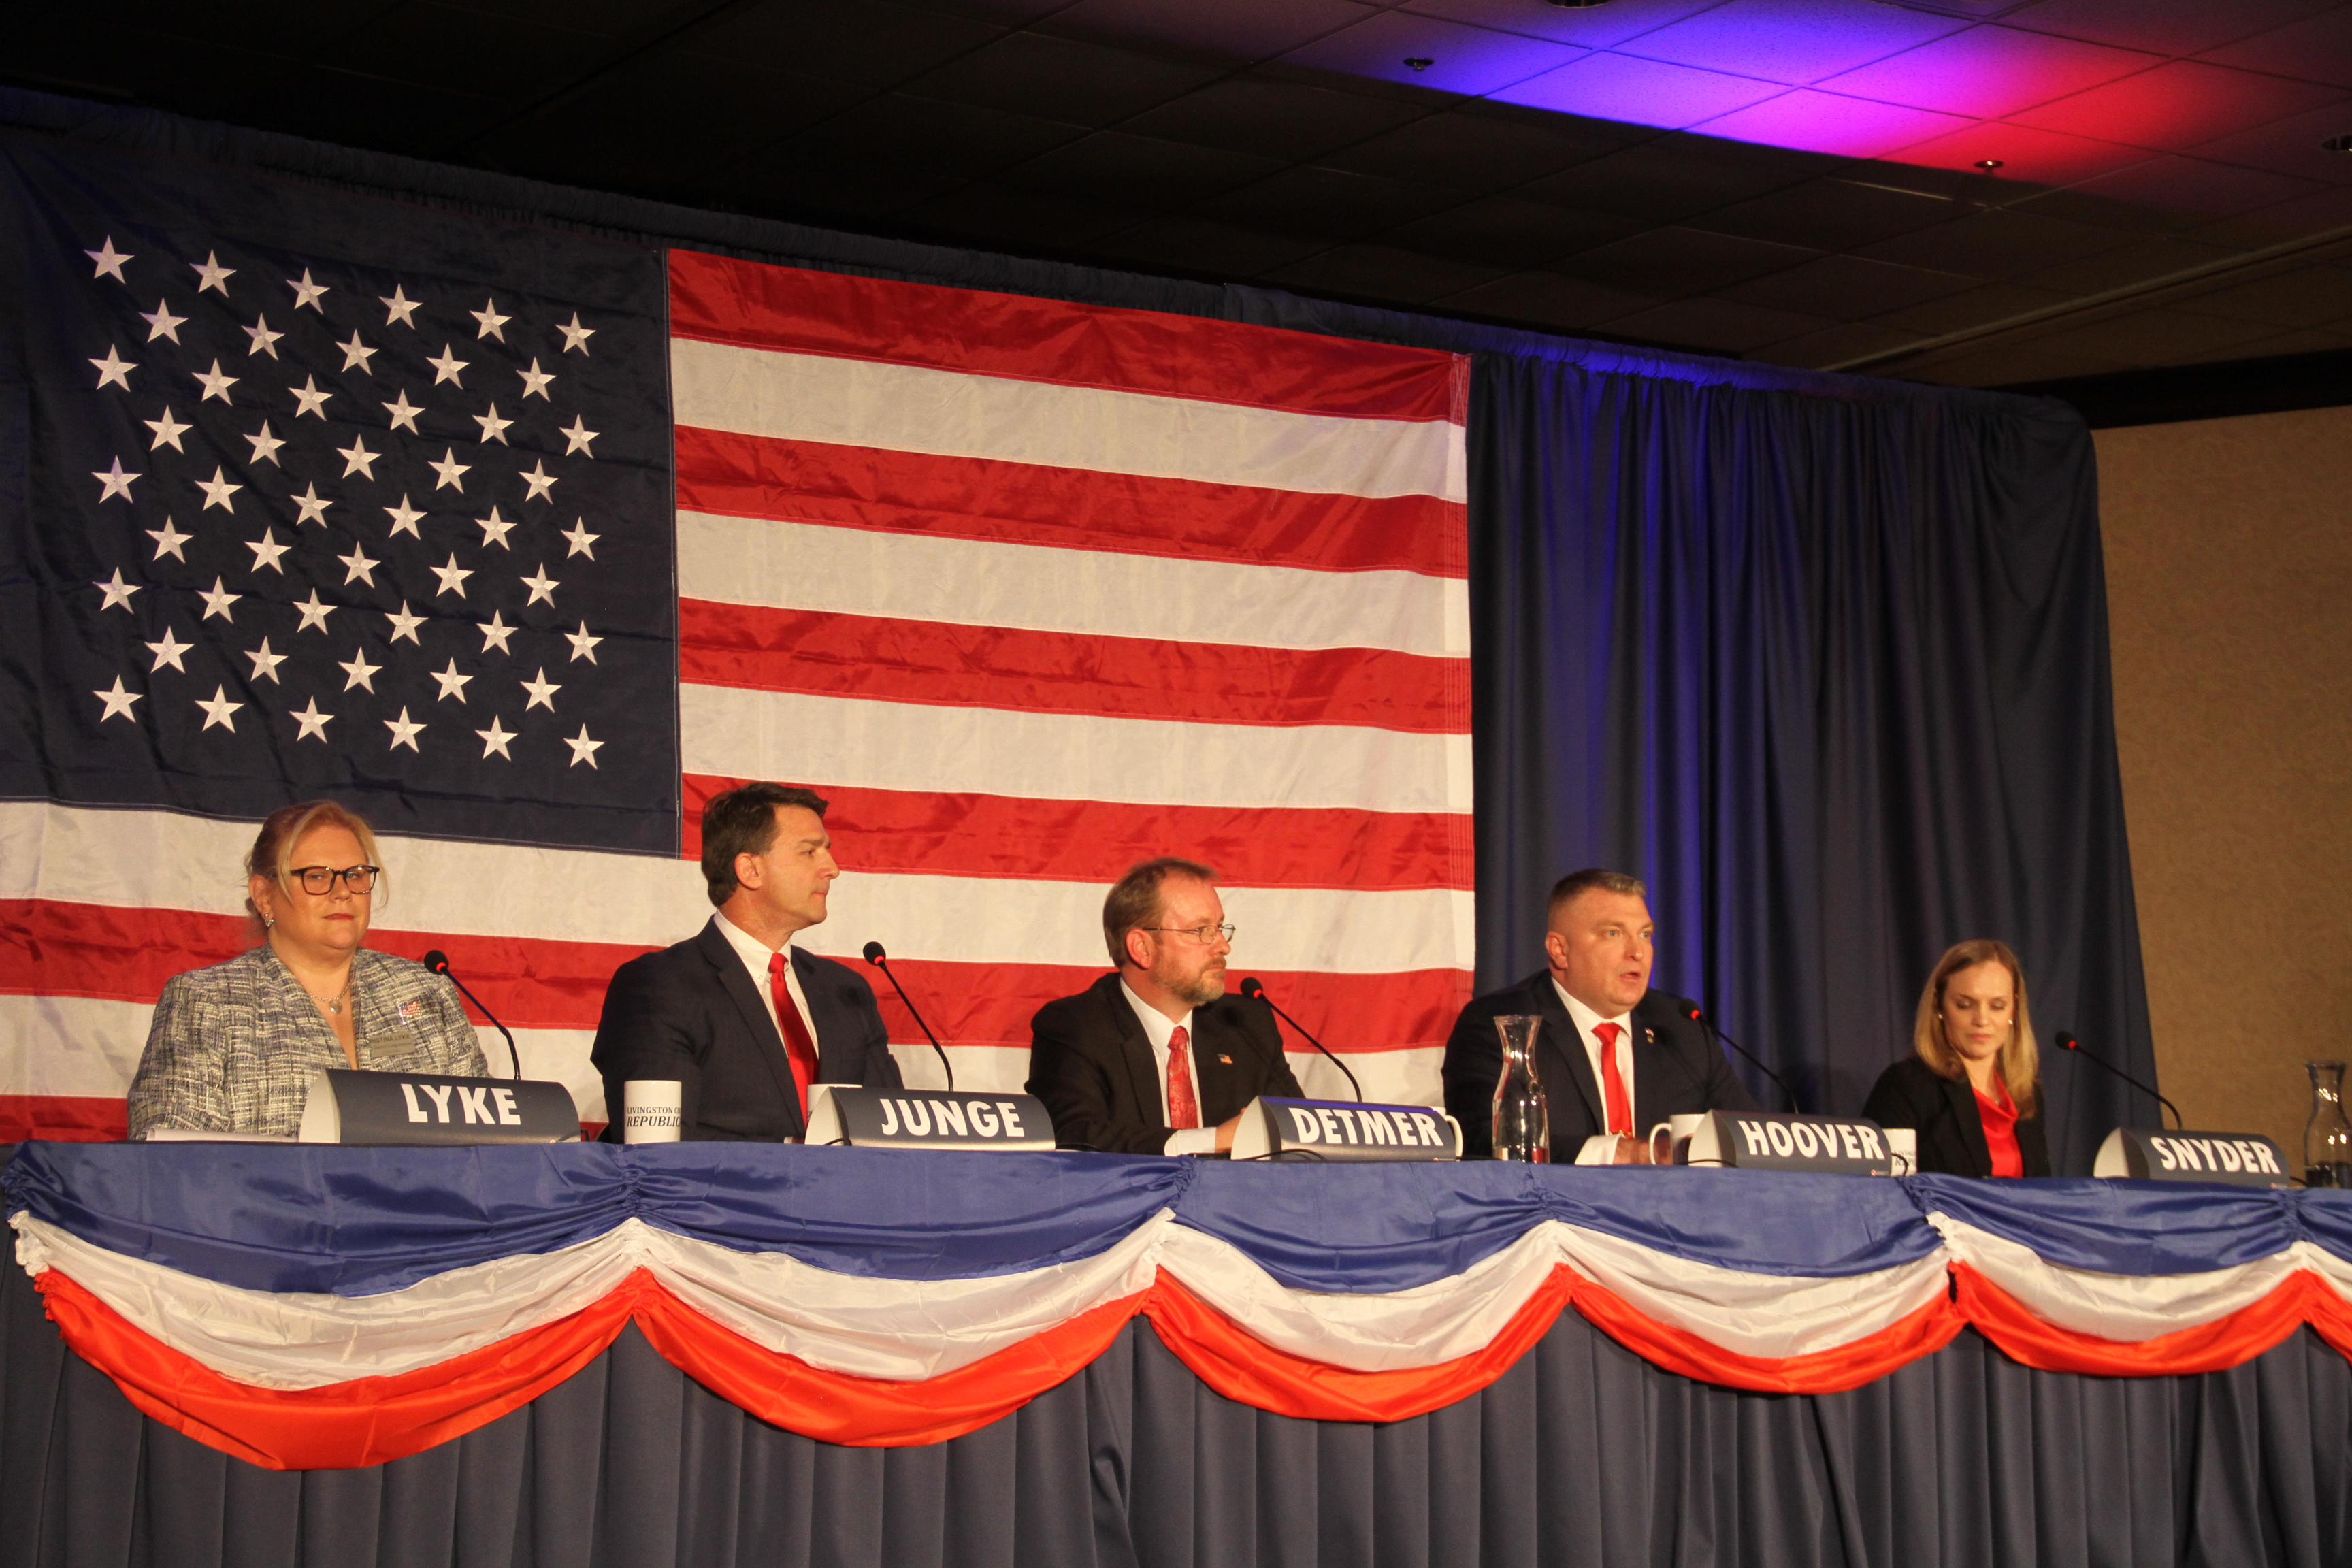 Five Michigan Republicans jockey to take on Slotkin at pro-Trump candidate forum